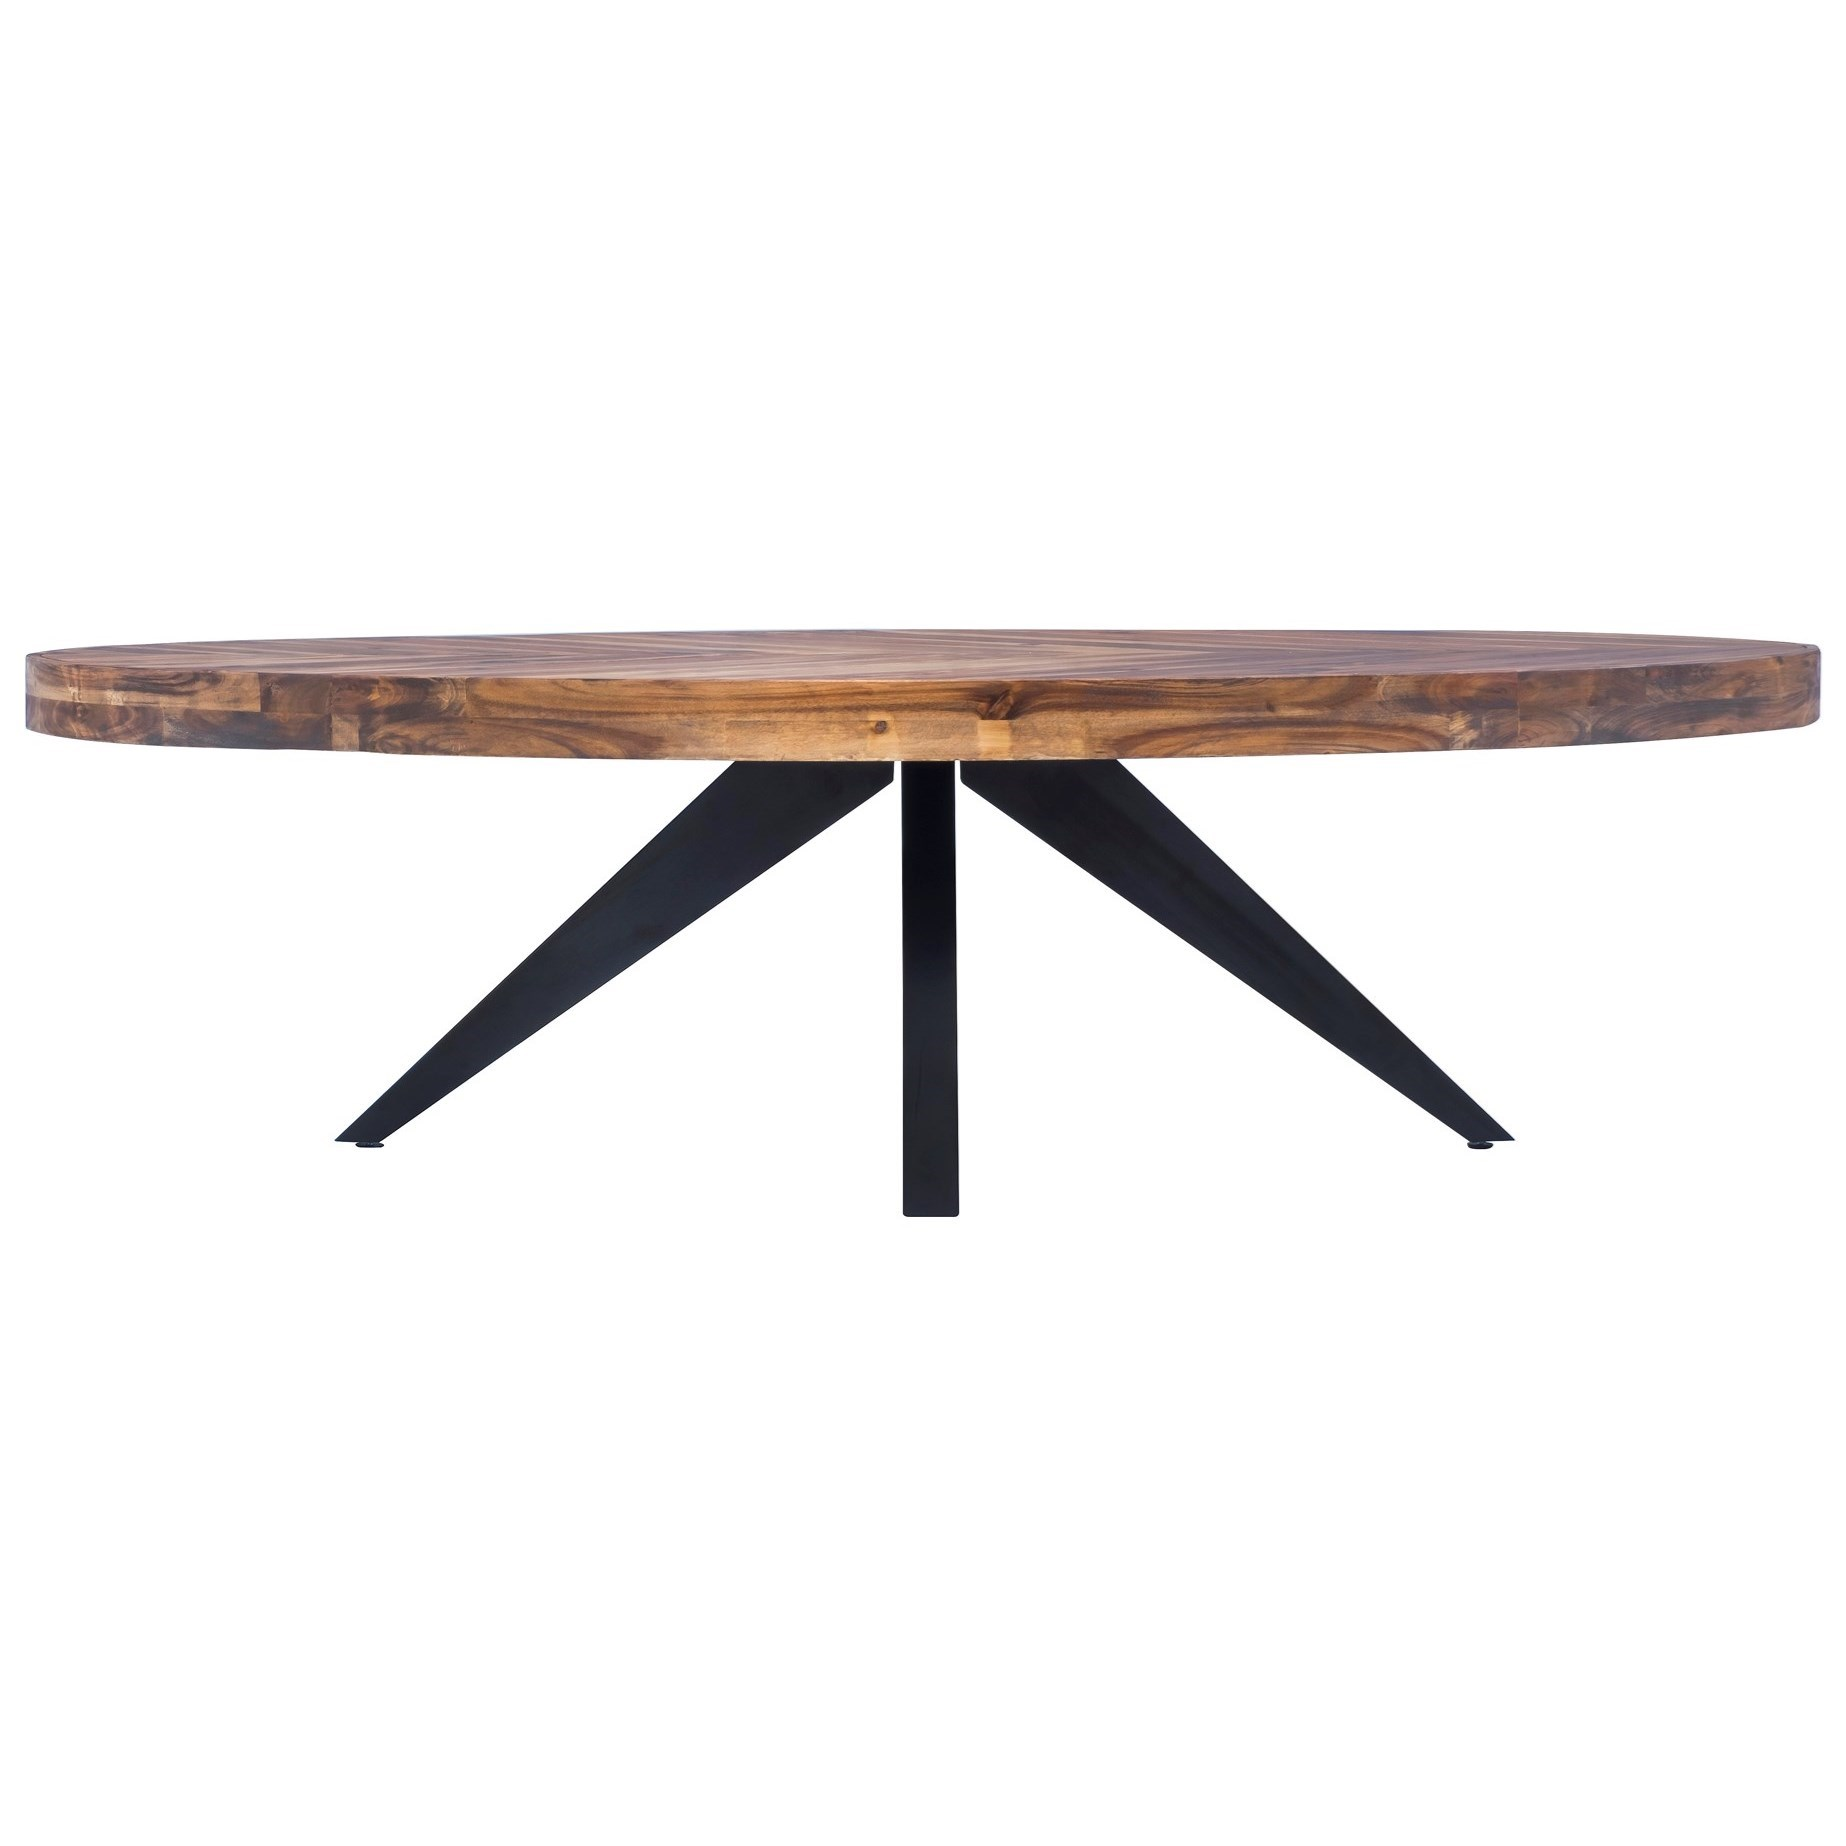 Parq Oval Coffee Table by Moe's Home Collection at Stoney Creek Furniture